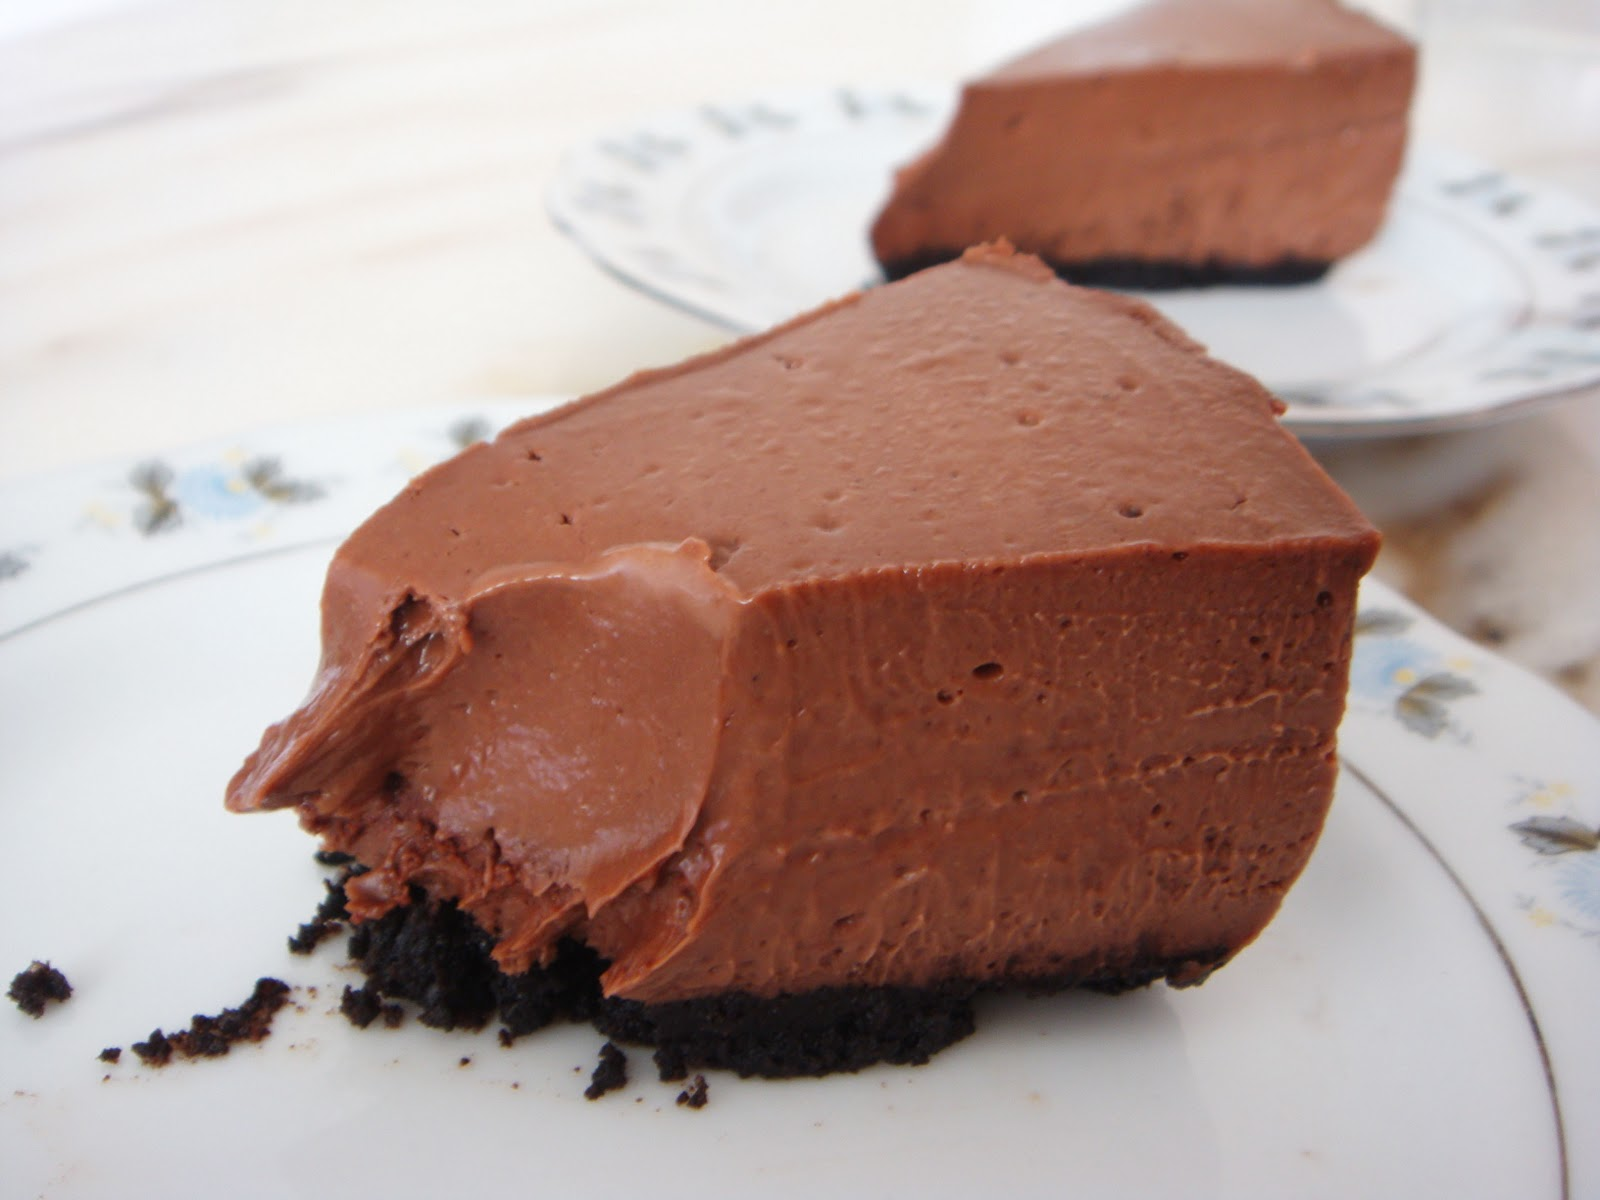 meant as a Chocolate cheesecake turned out to be a Mocha Cheesecake ...